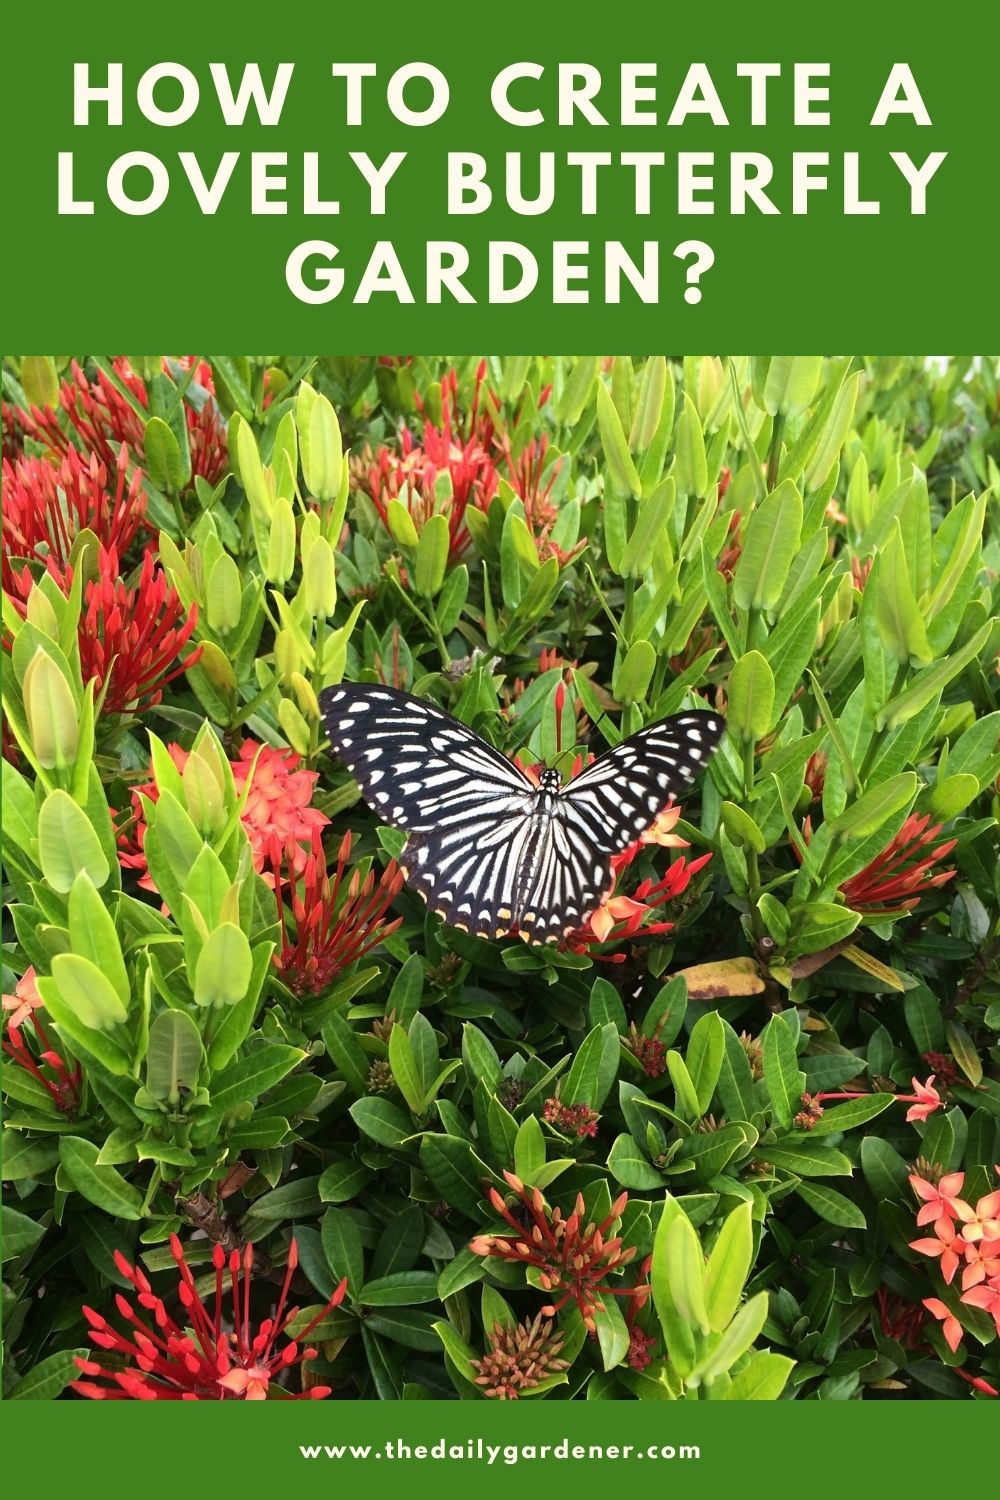 How to Create a Lovely Butterfly Garden 1